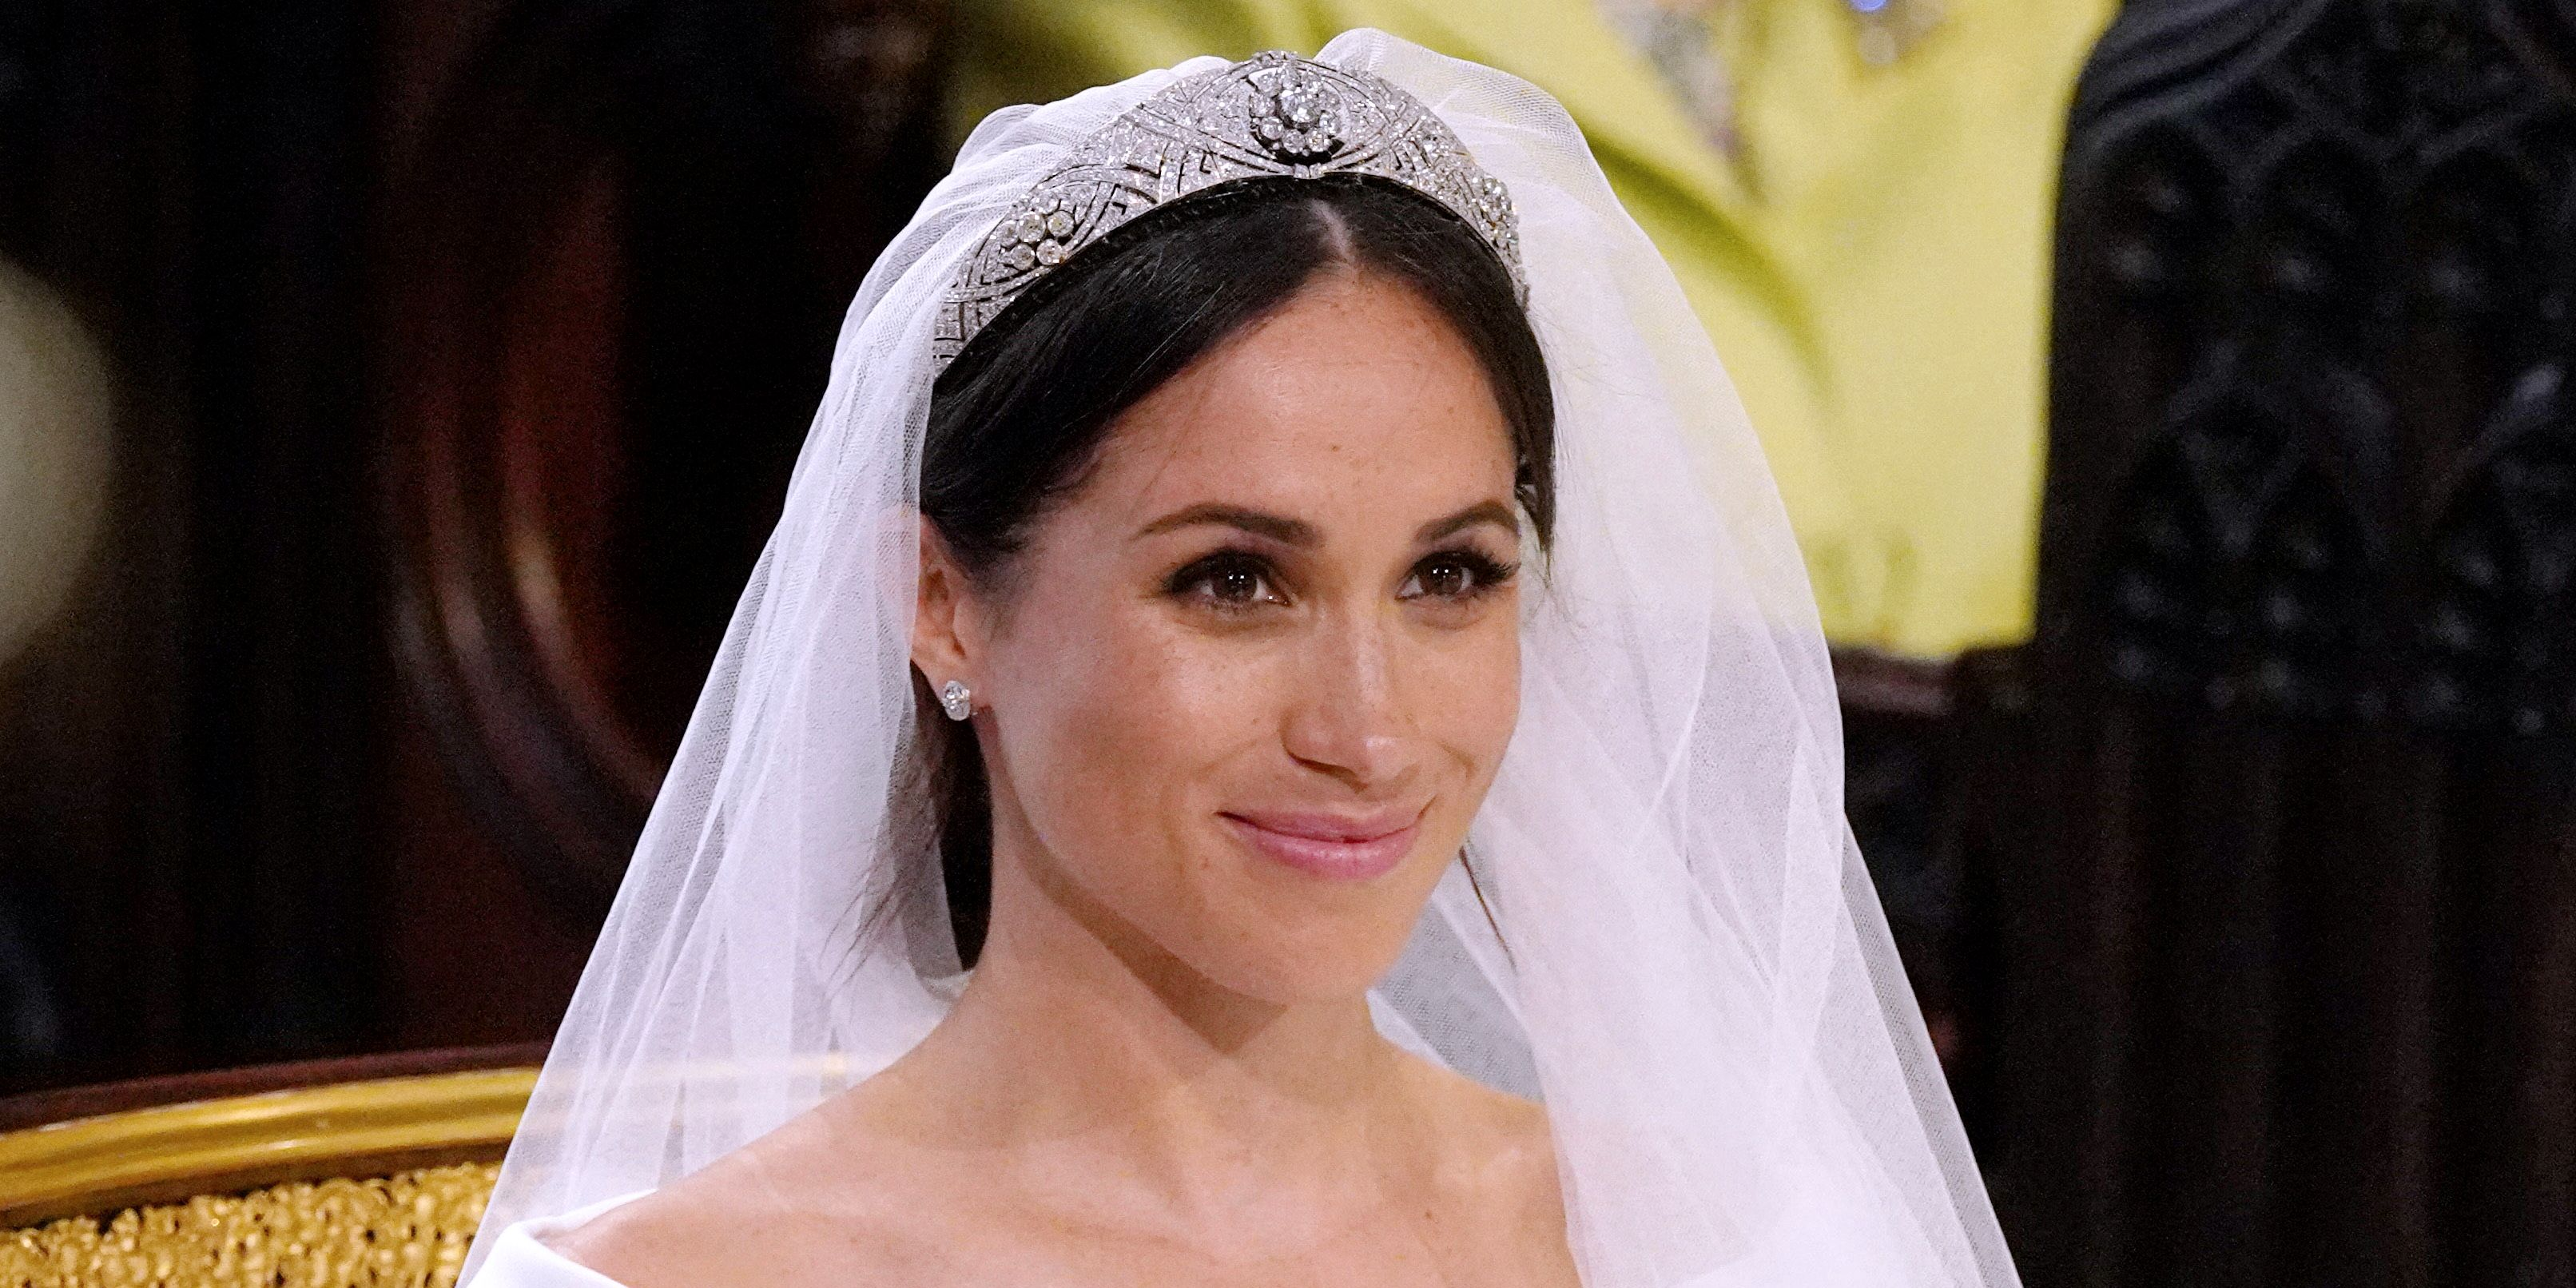 royal wedding 2018 Meghan Markle tiara